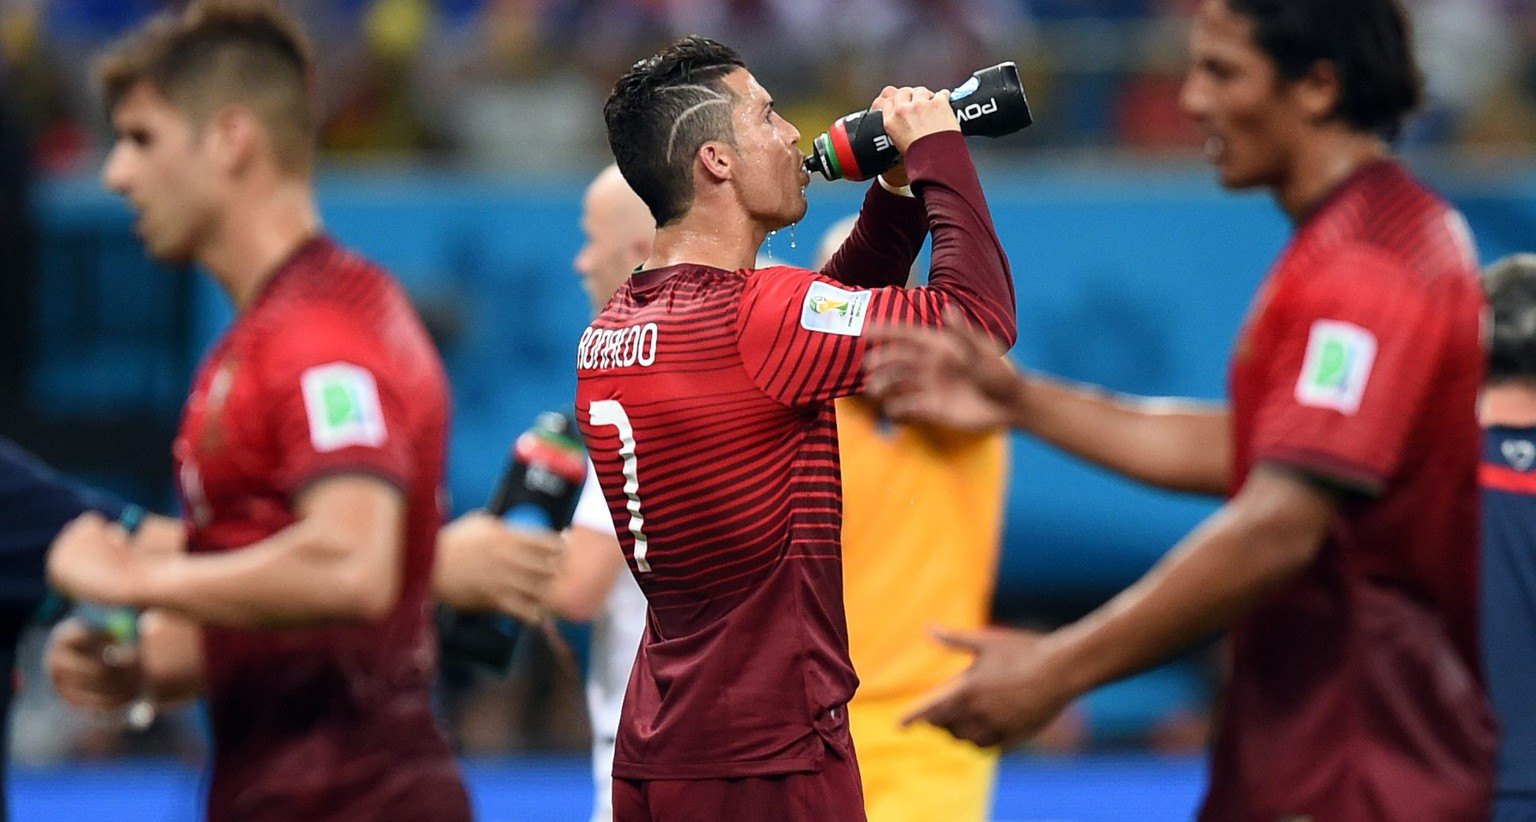 epa04273714 Cristiano Ronaldo (C) of Portugal drinks water during a short break at the FIFA World Cup 2014 group G preliminary round match between the USA and Portugal at the Arena Amazonia Stadium in Manaus, Brazil, 22 June 2014